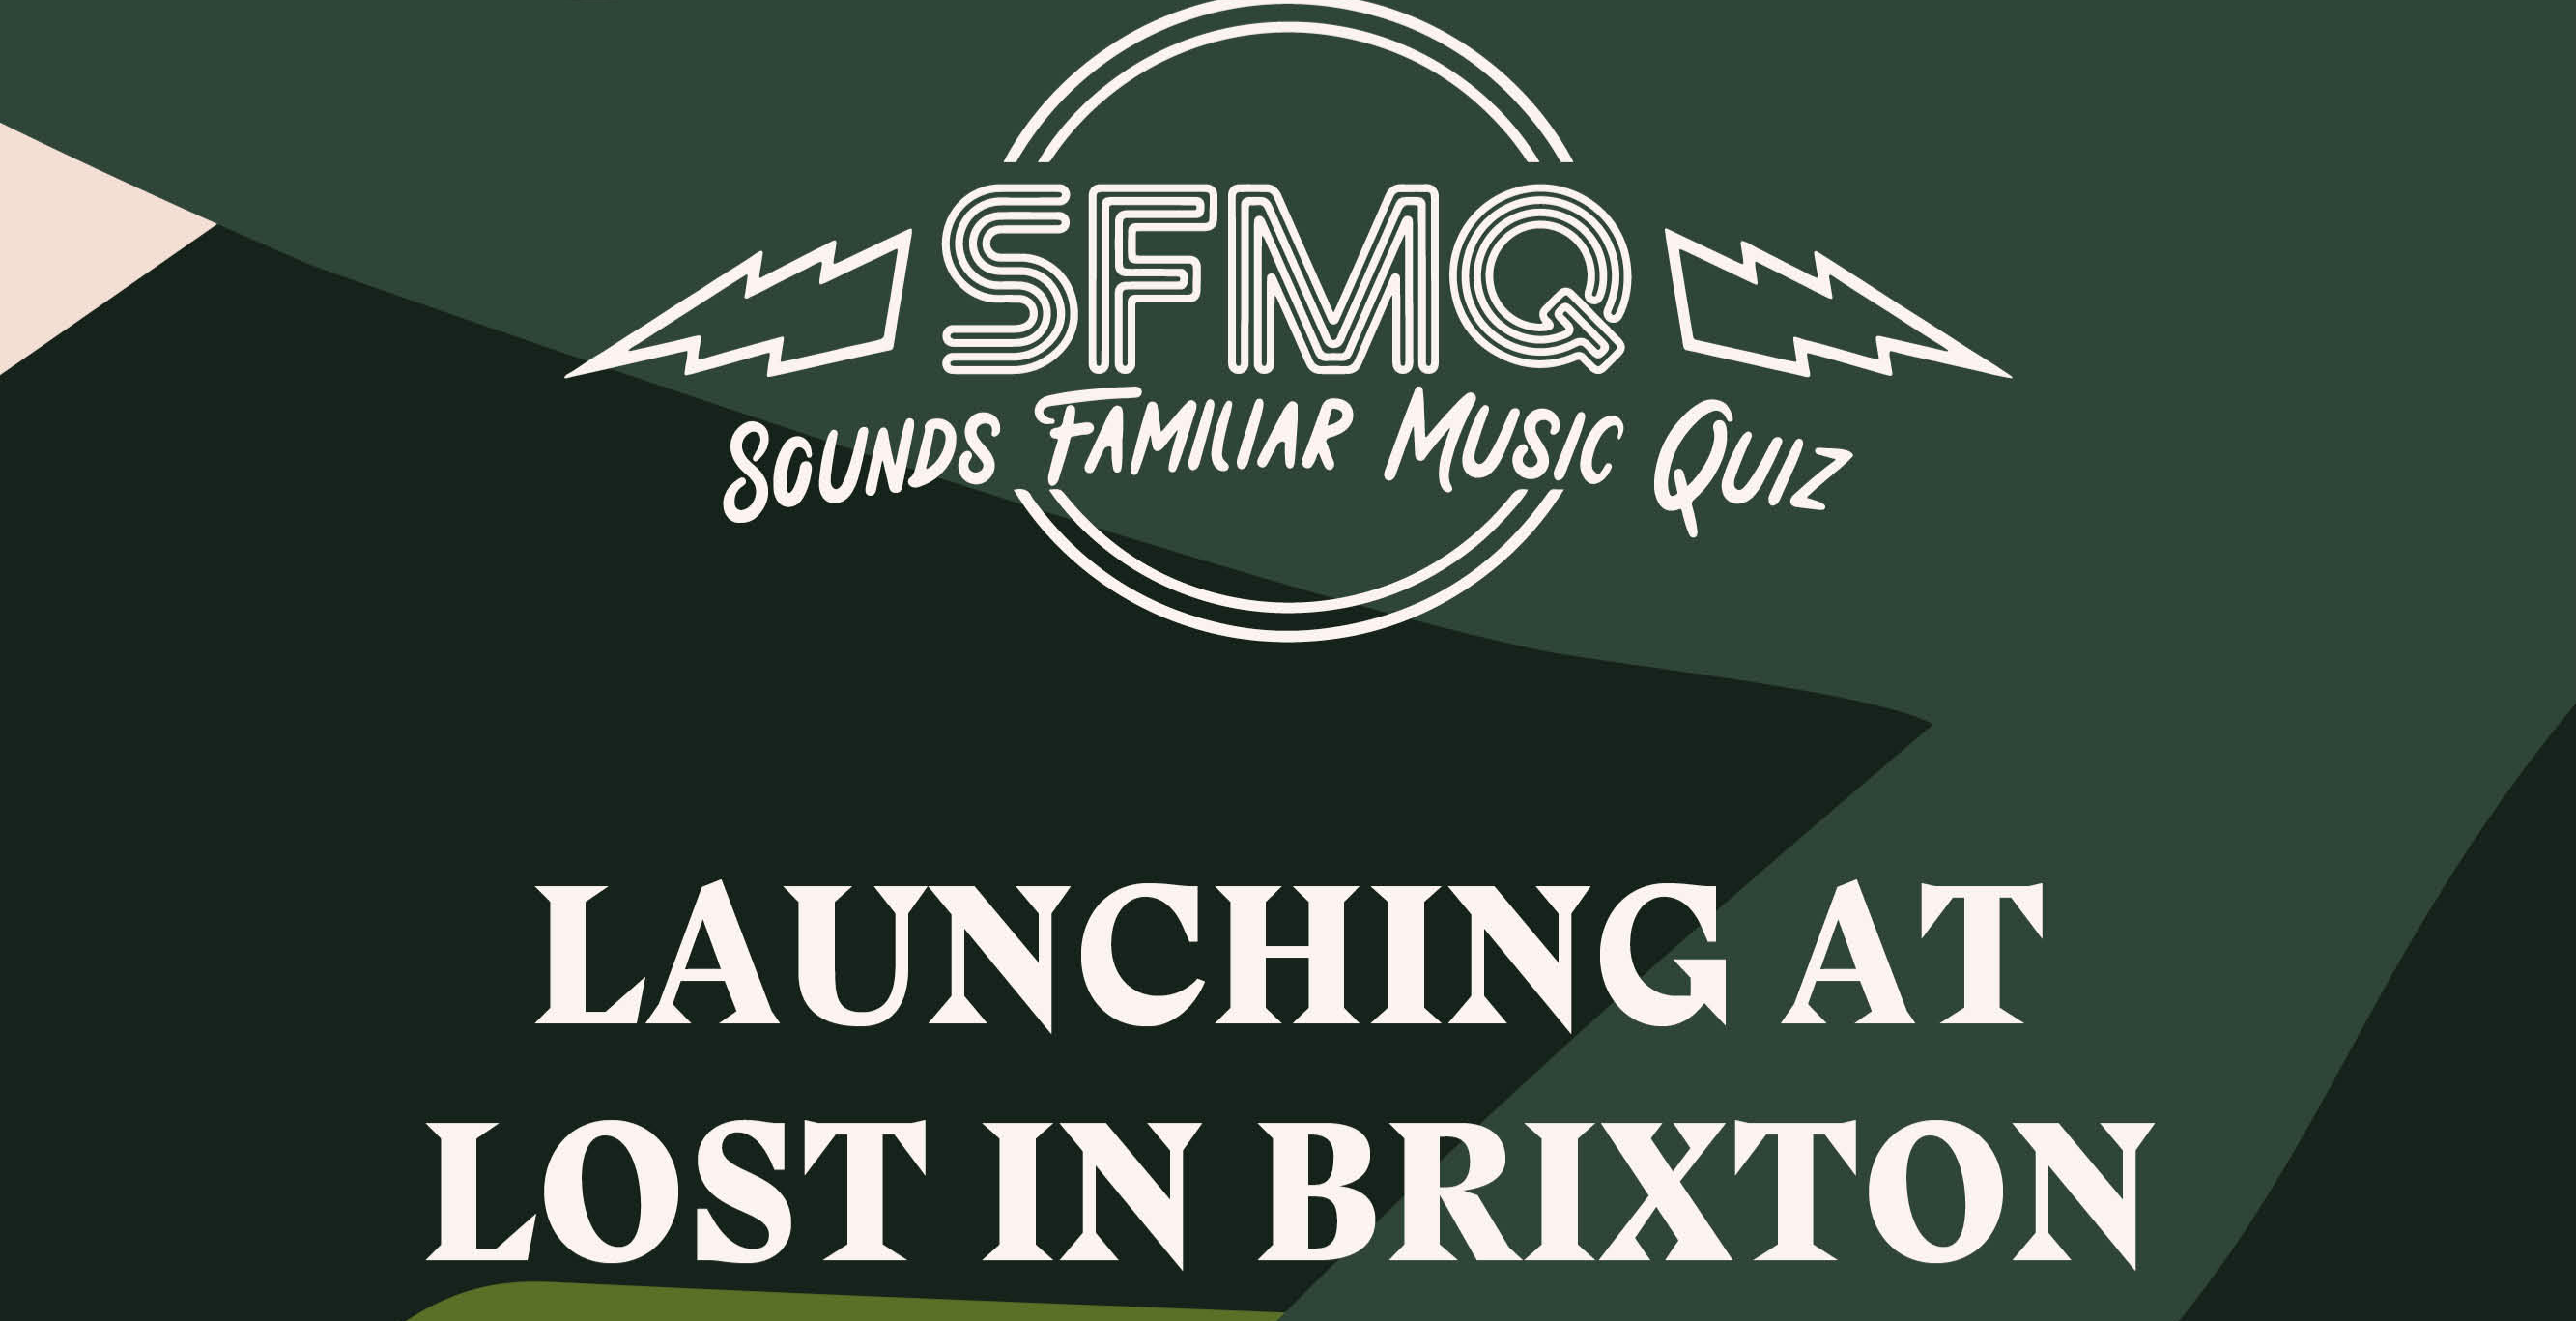 Sounds Familiar Music Quiz at Lost In Brixton